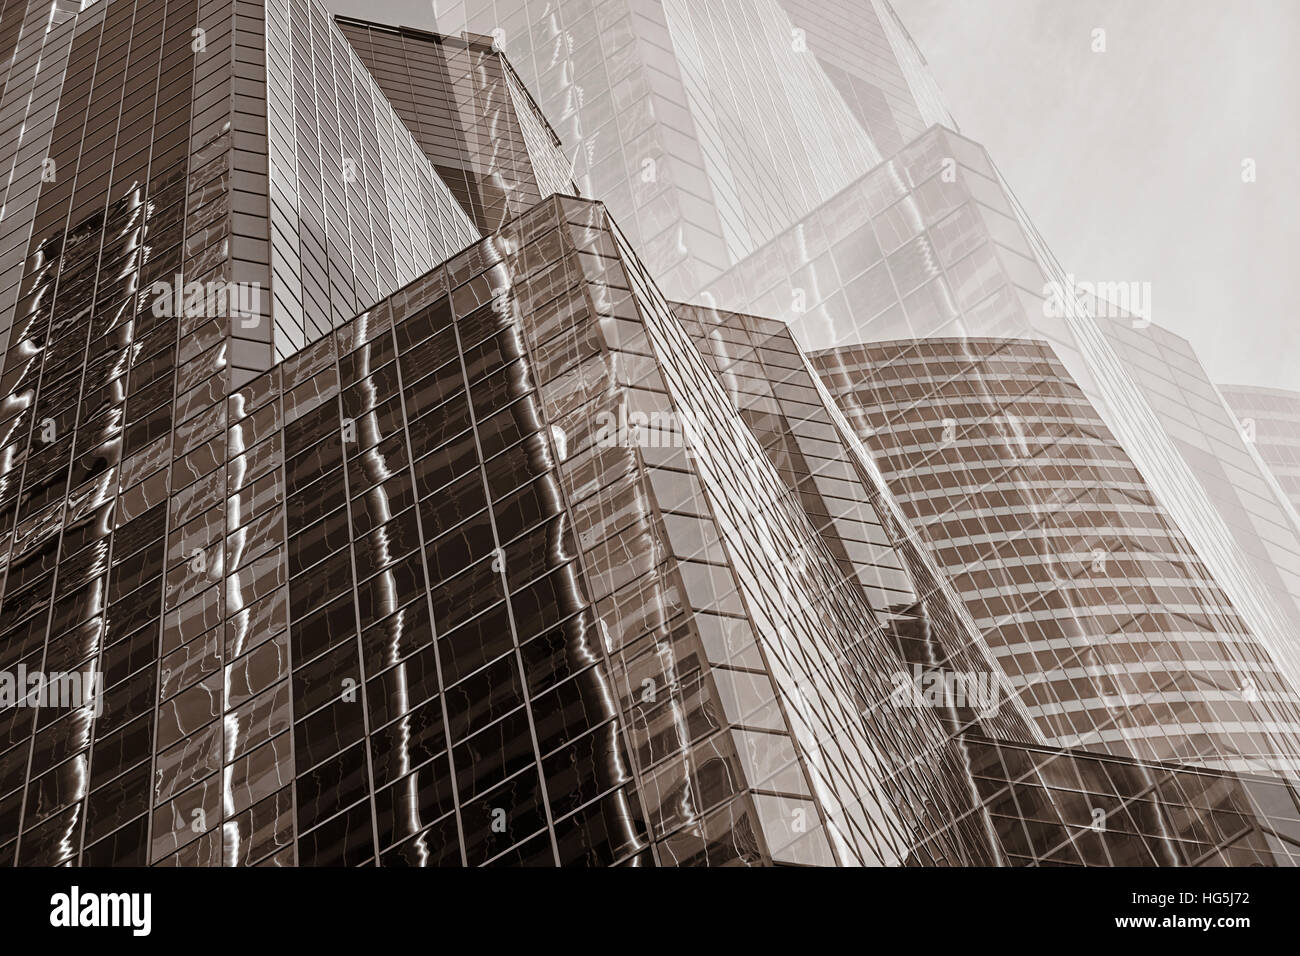 Abstract view of glass skyscrapers reflecting nearby buildings Stock Photo